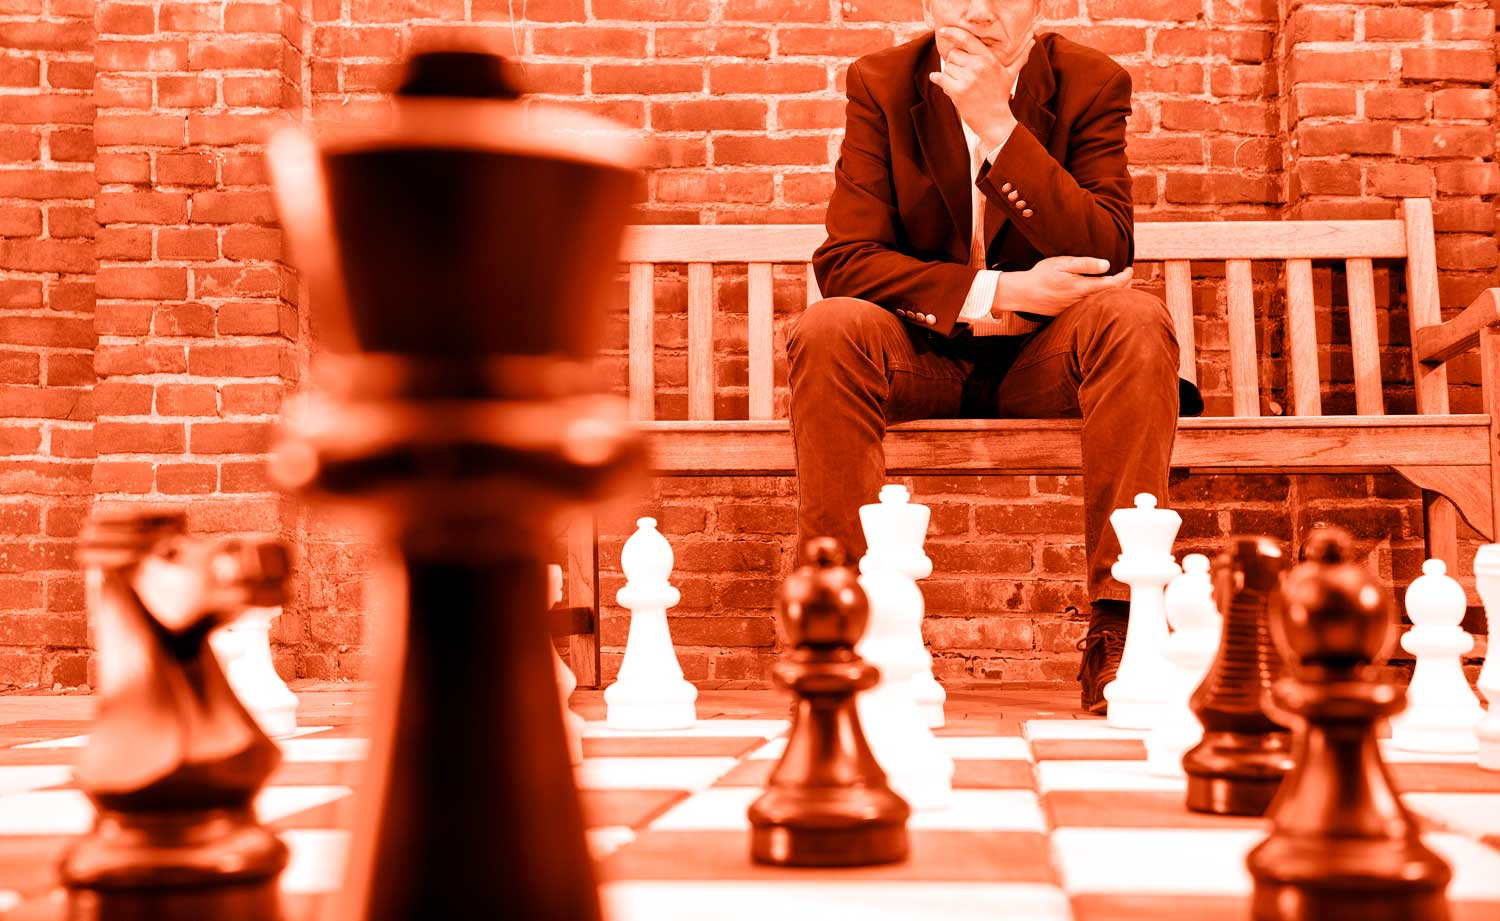 Best Plan Insurance and Financial Services | In the Chess Game of Life, We want to help you stay two moves ahead!